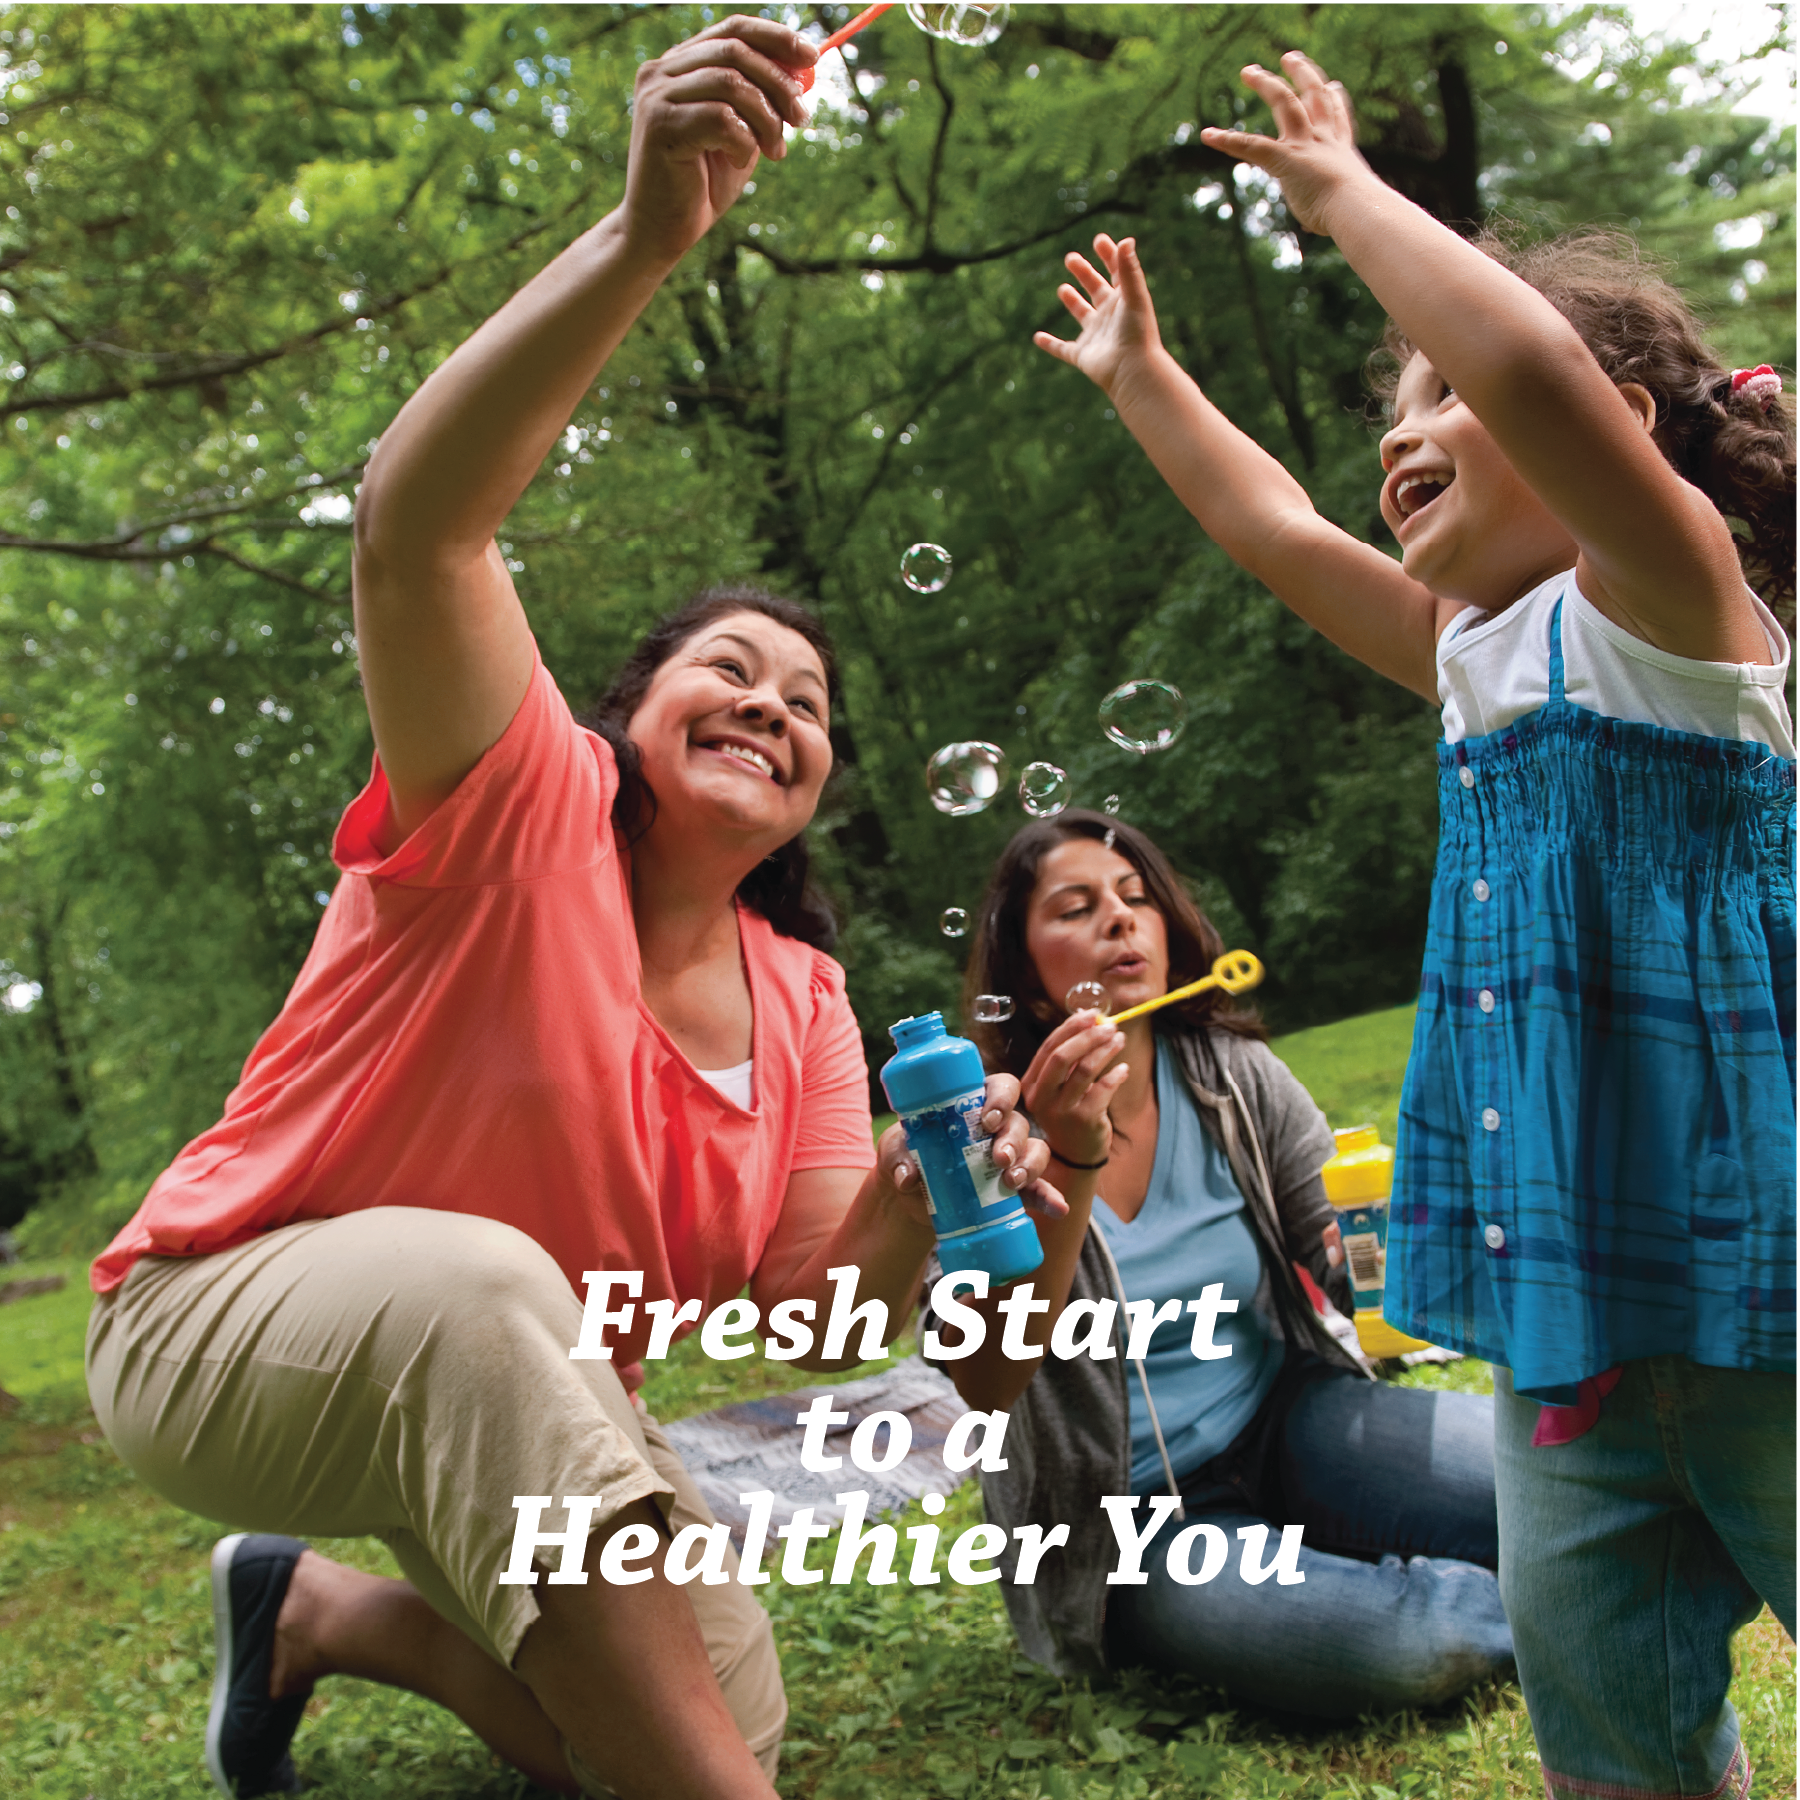 A Fresh Start To a Healthier You!